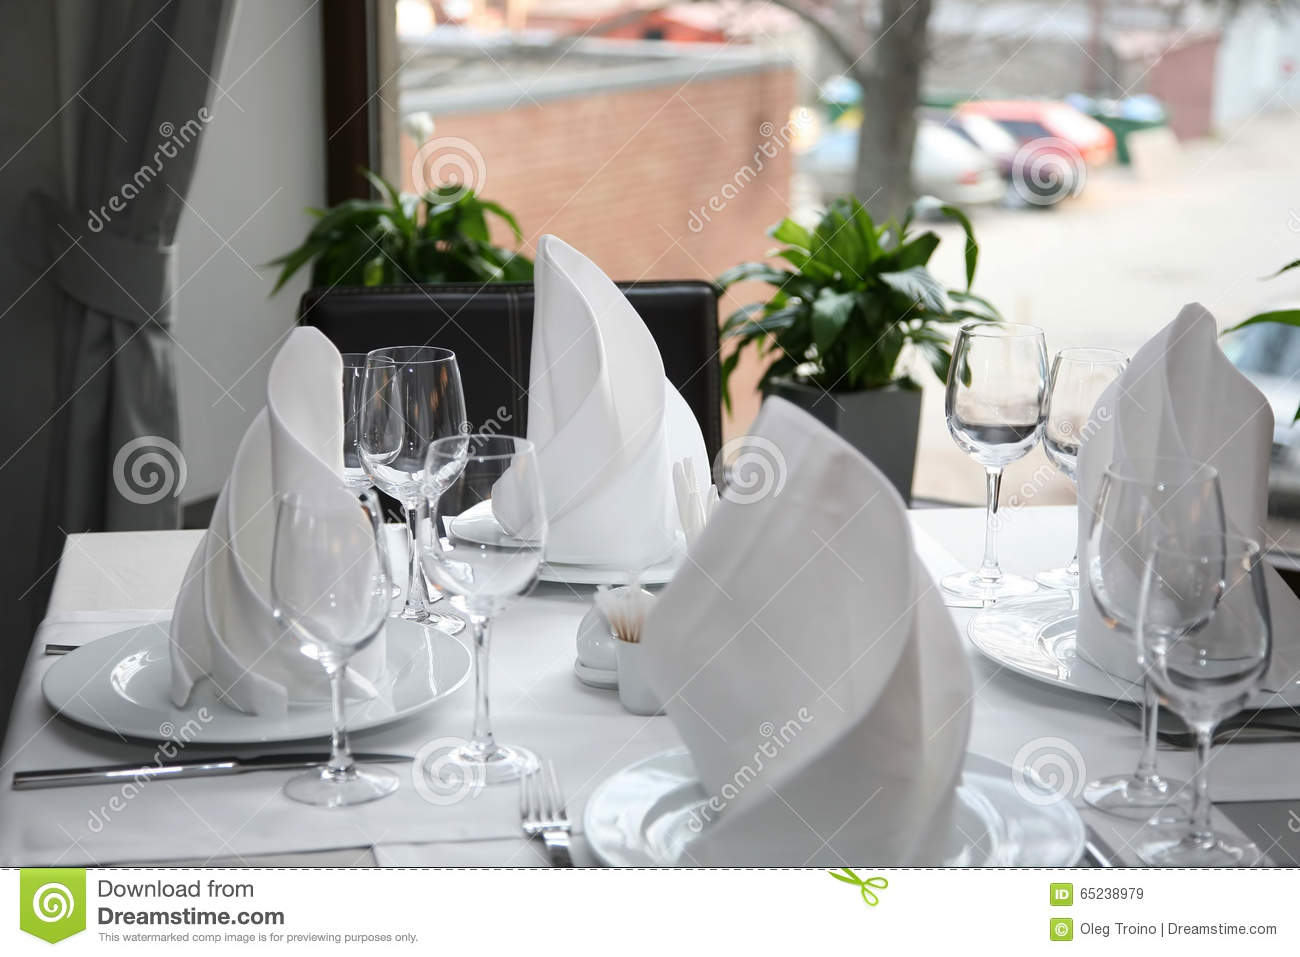 Table setting in a restaurant. Cutlery 93